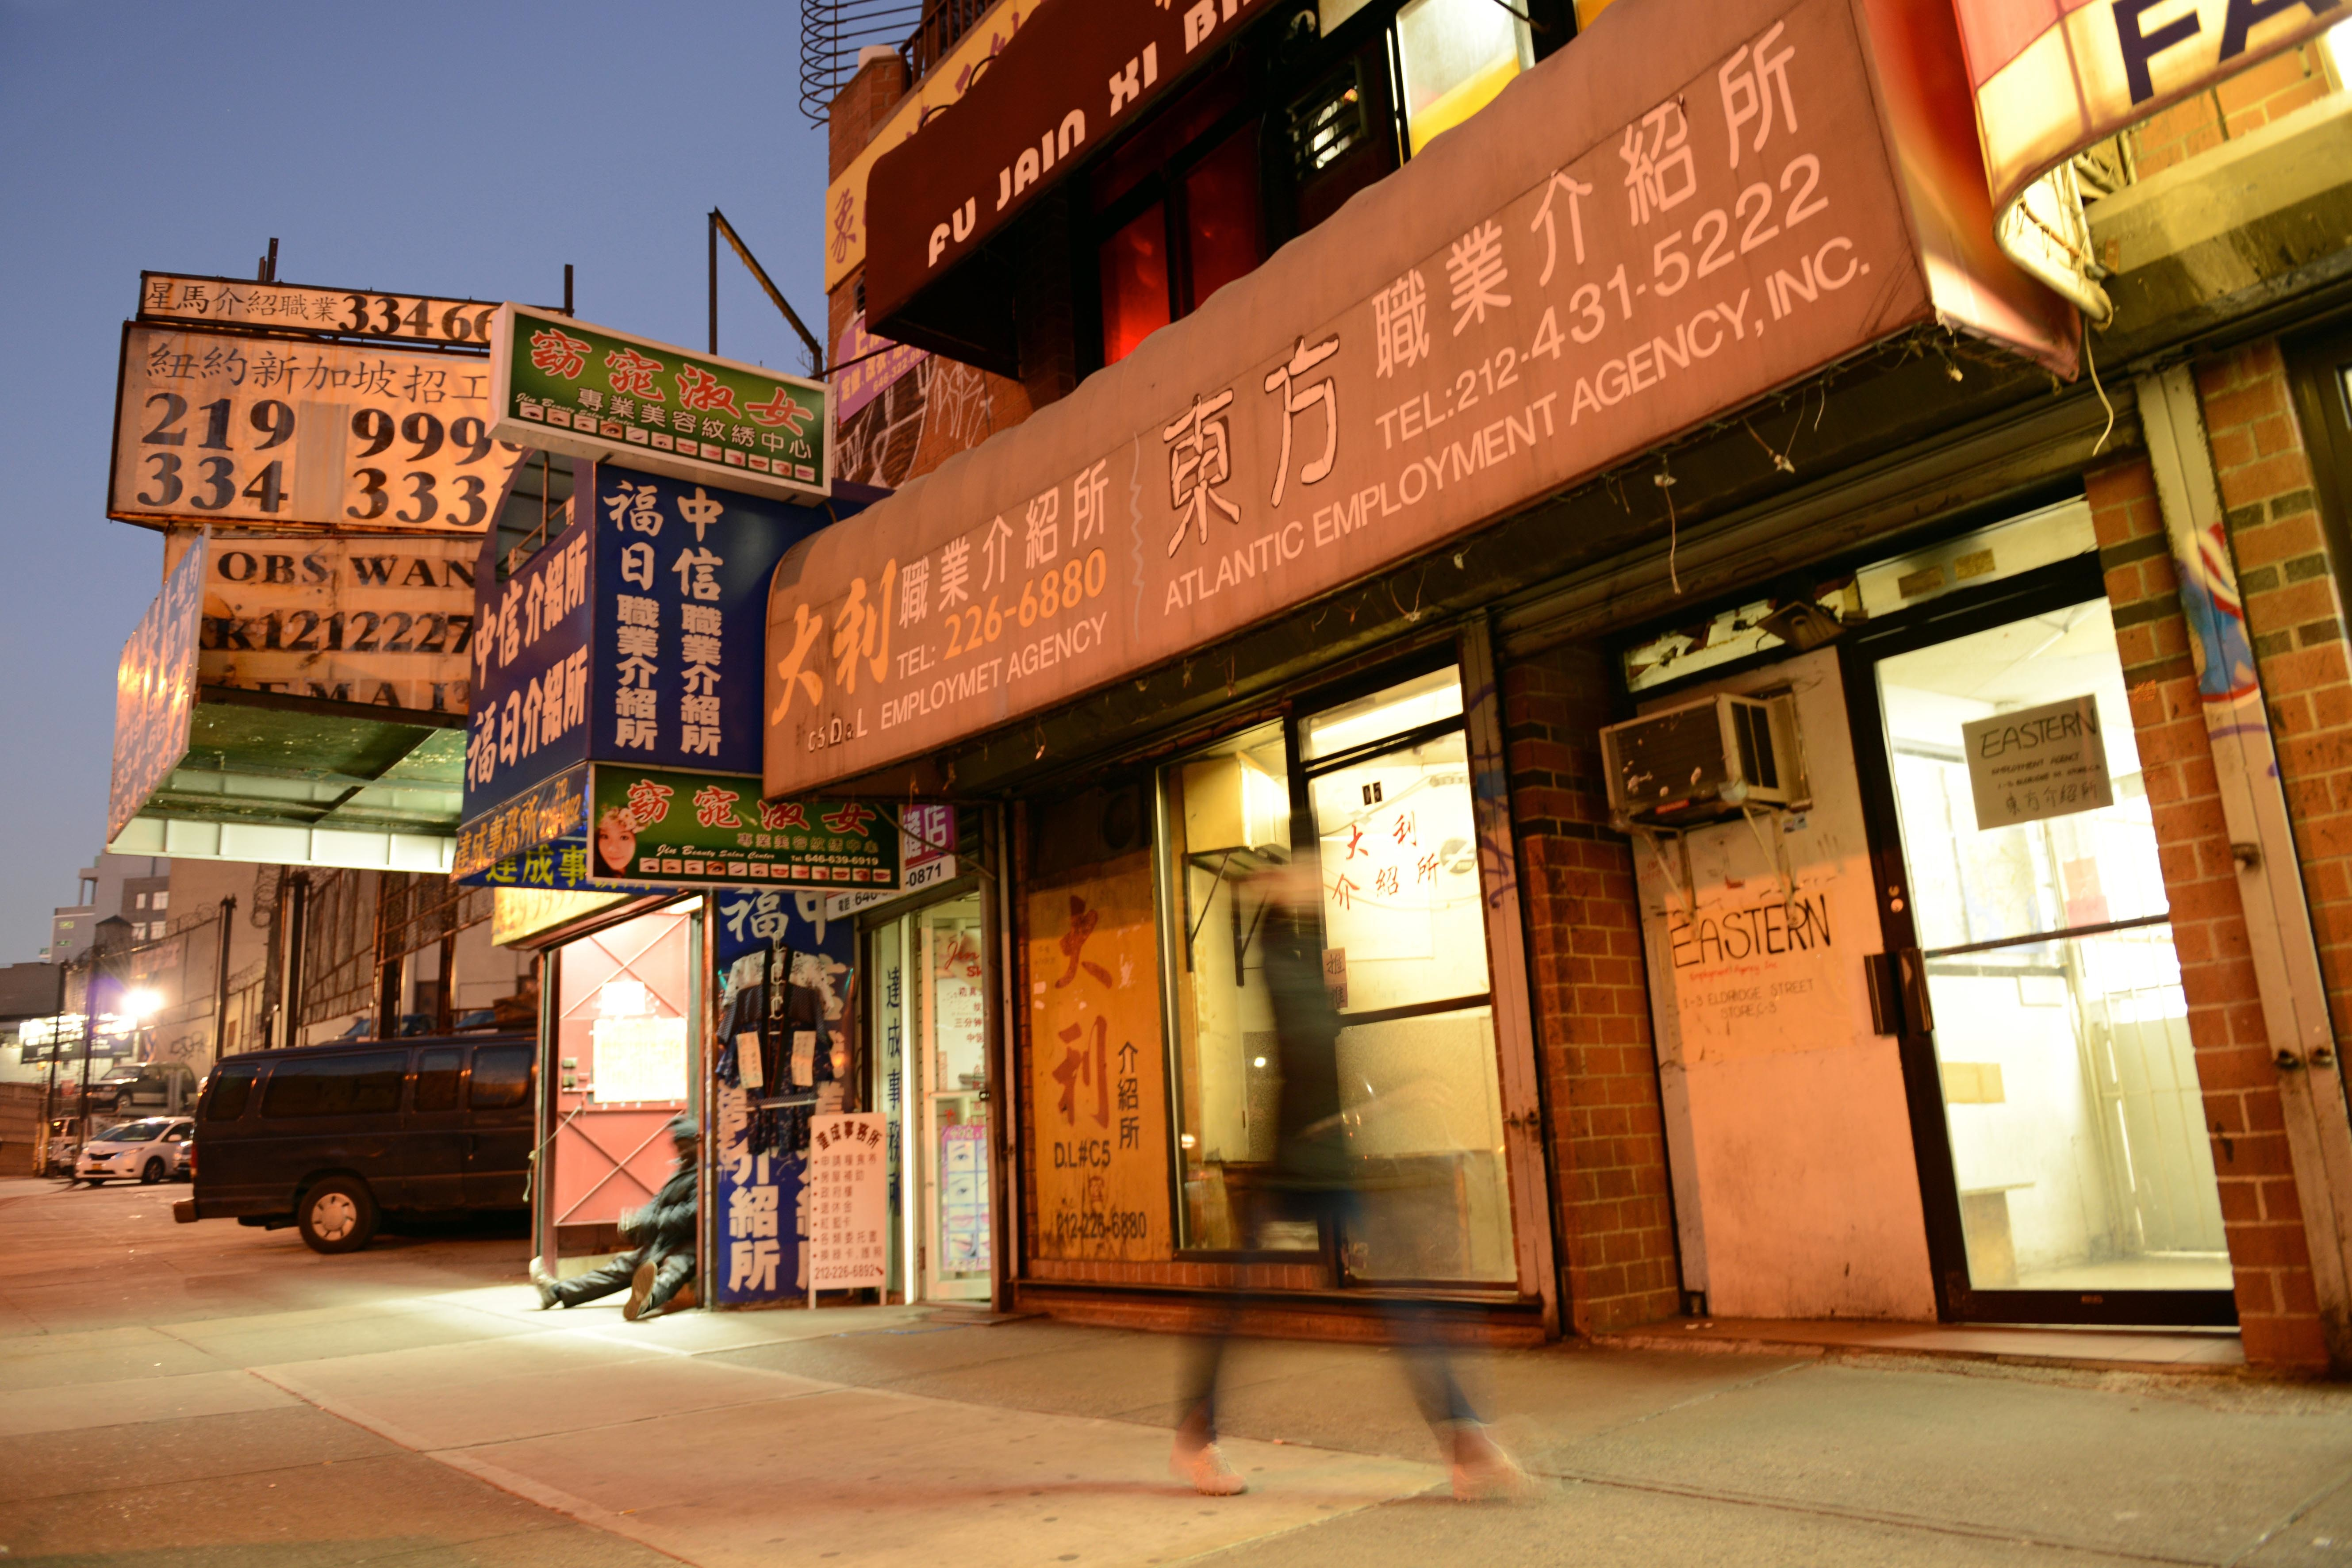 Caption: Chinatown, Manhattan, Credit: Meredith Nierman, WGBH